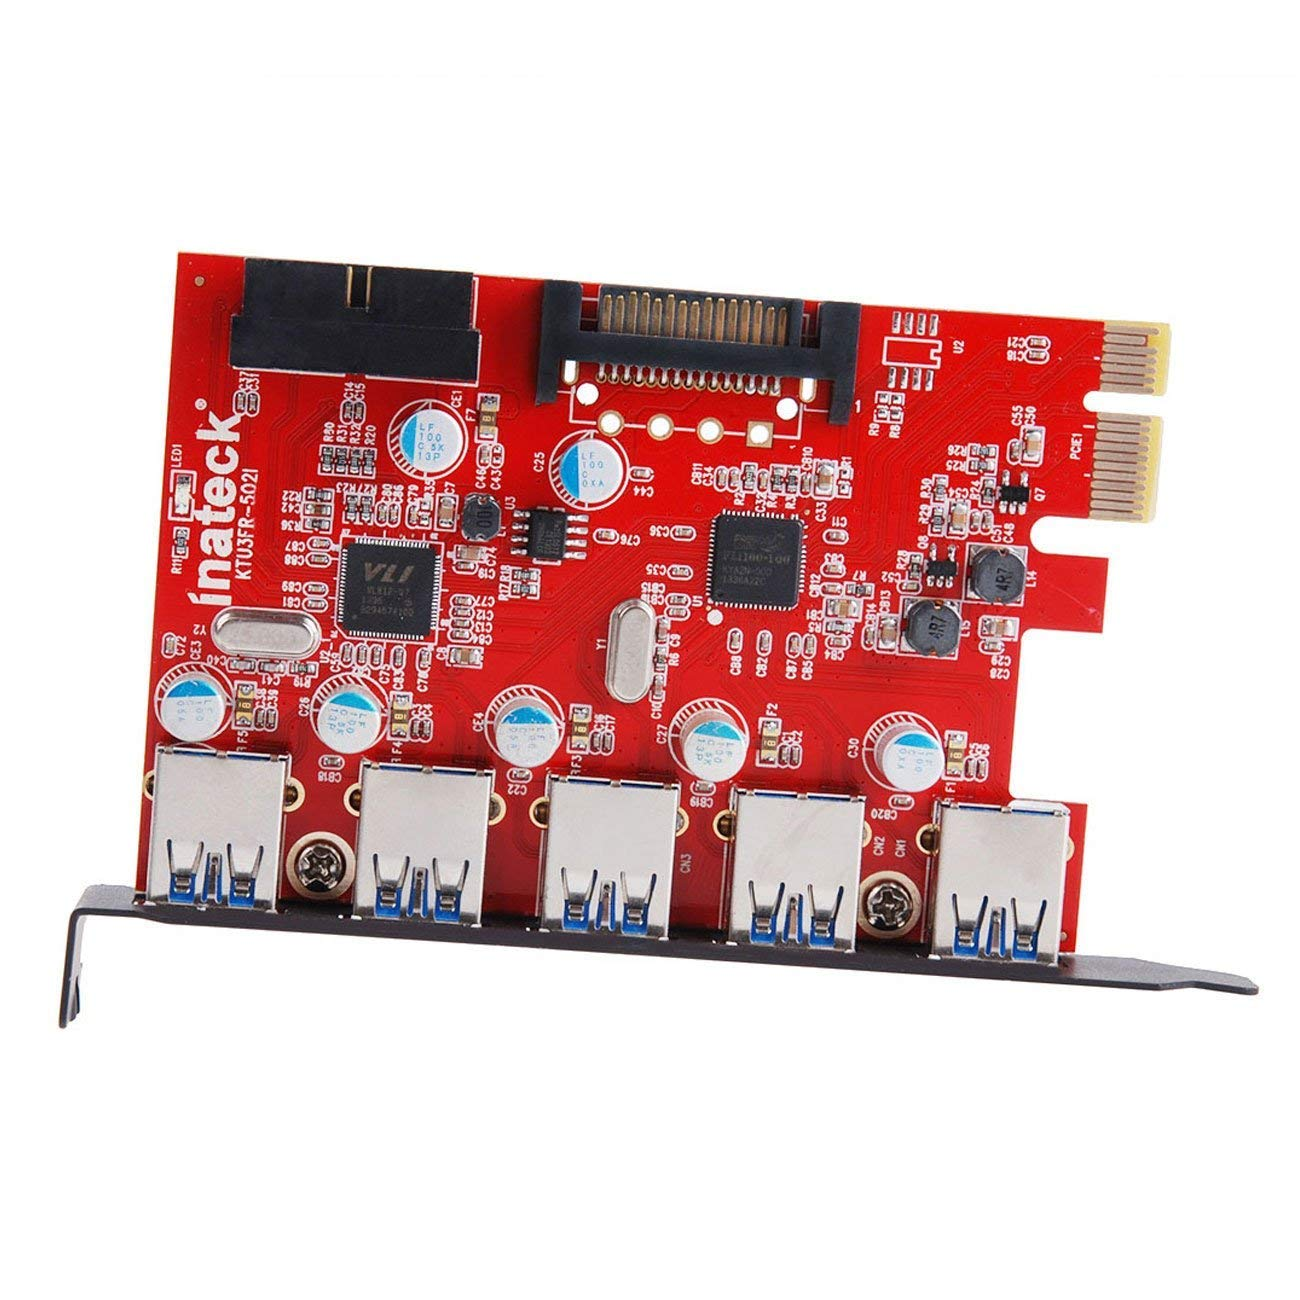 Inateck PCI-E to USB 3.0 (5 Ports) PCI Express Card and 15-Pin Power Connector, Red (KT5001) by Inateck (Image #3)